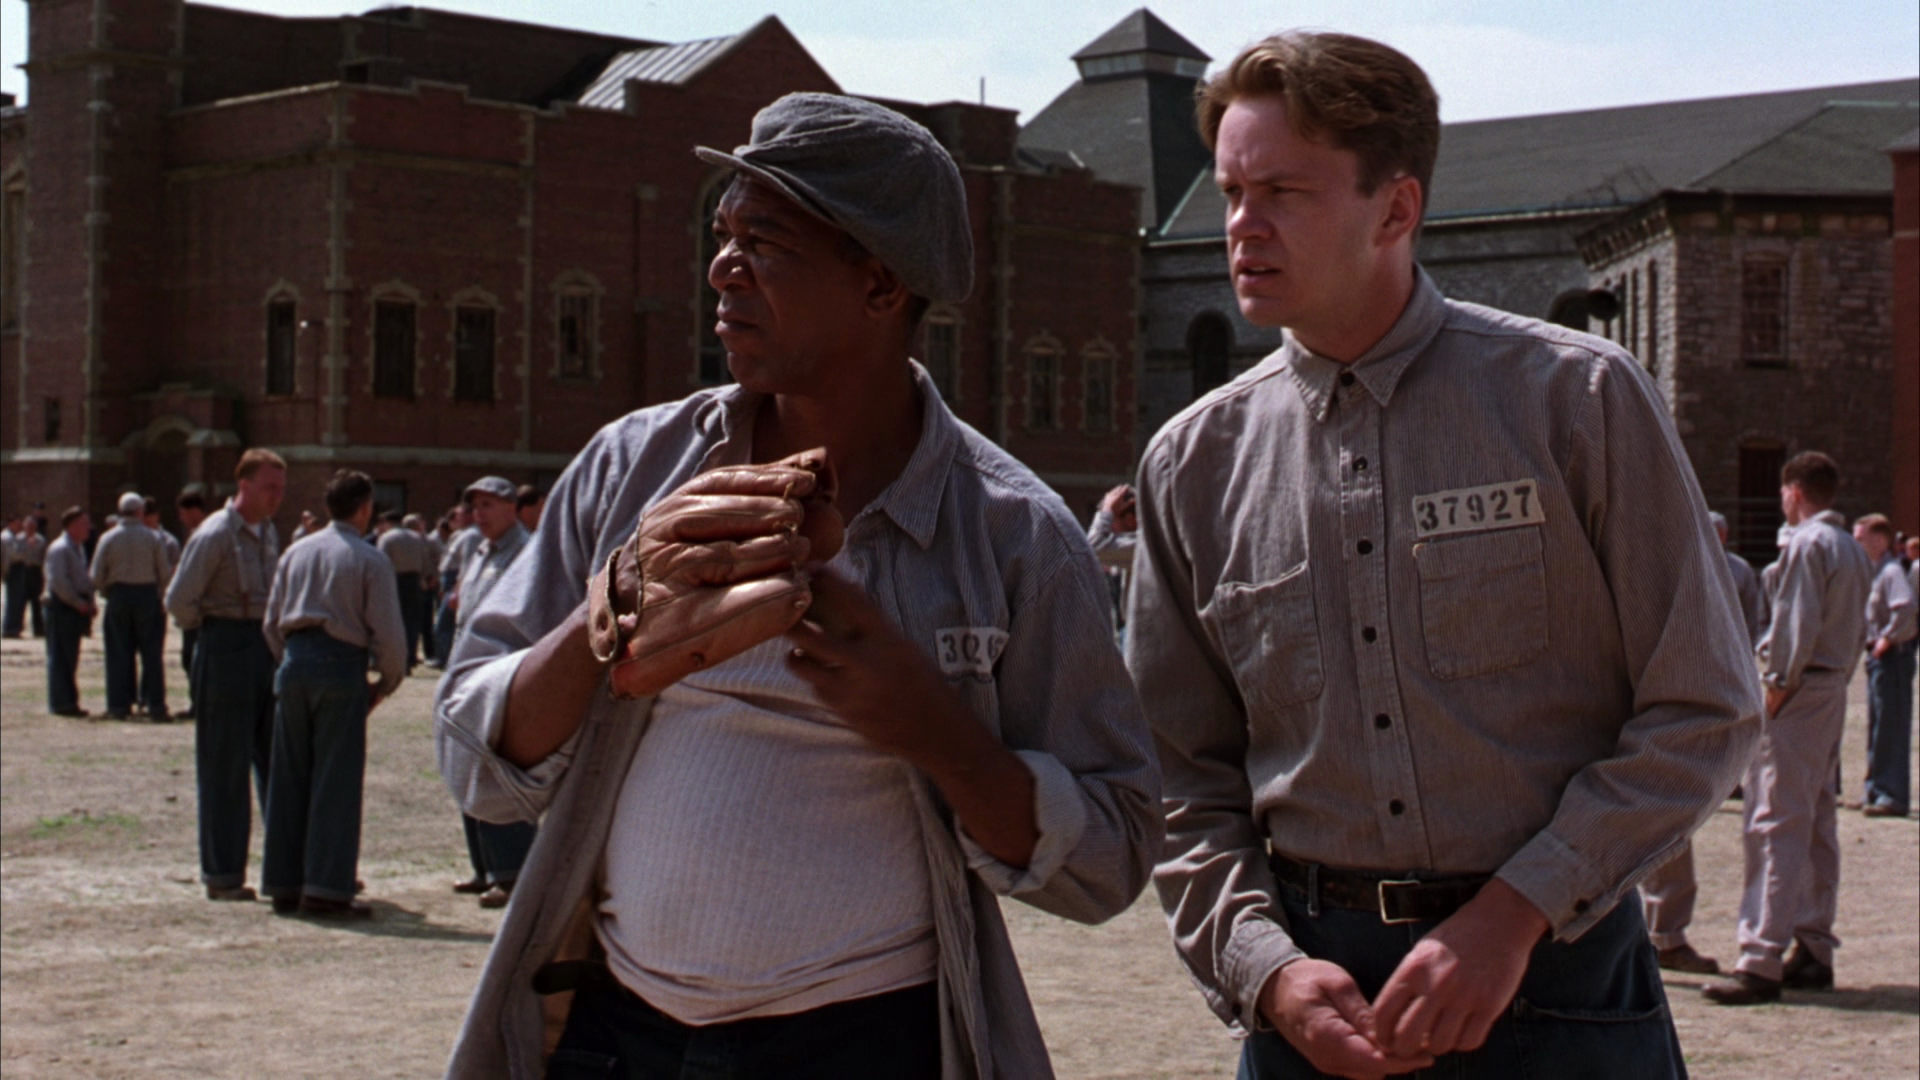 shawshank redemption essays essay shawshank redemption essay  movies that everyone should see ldquo the shawshank redemption rdquo acirc fogs things